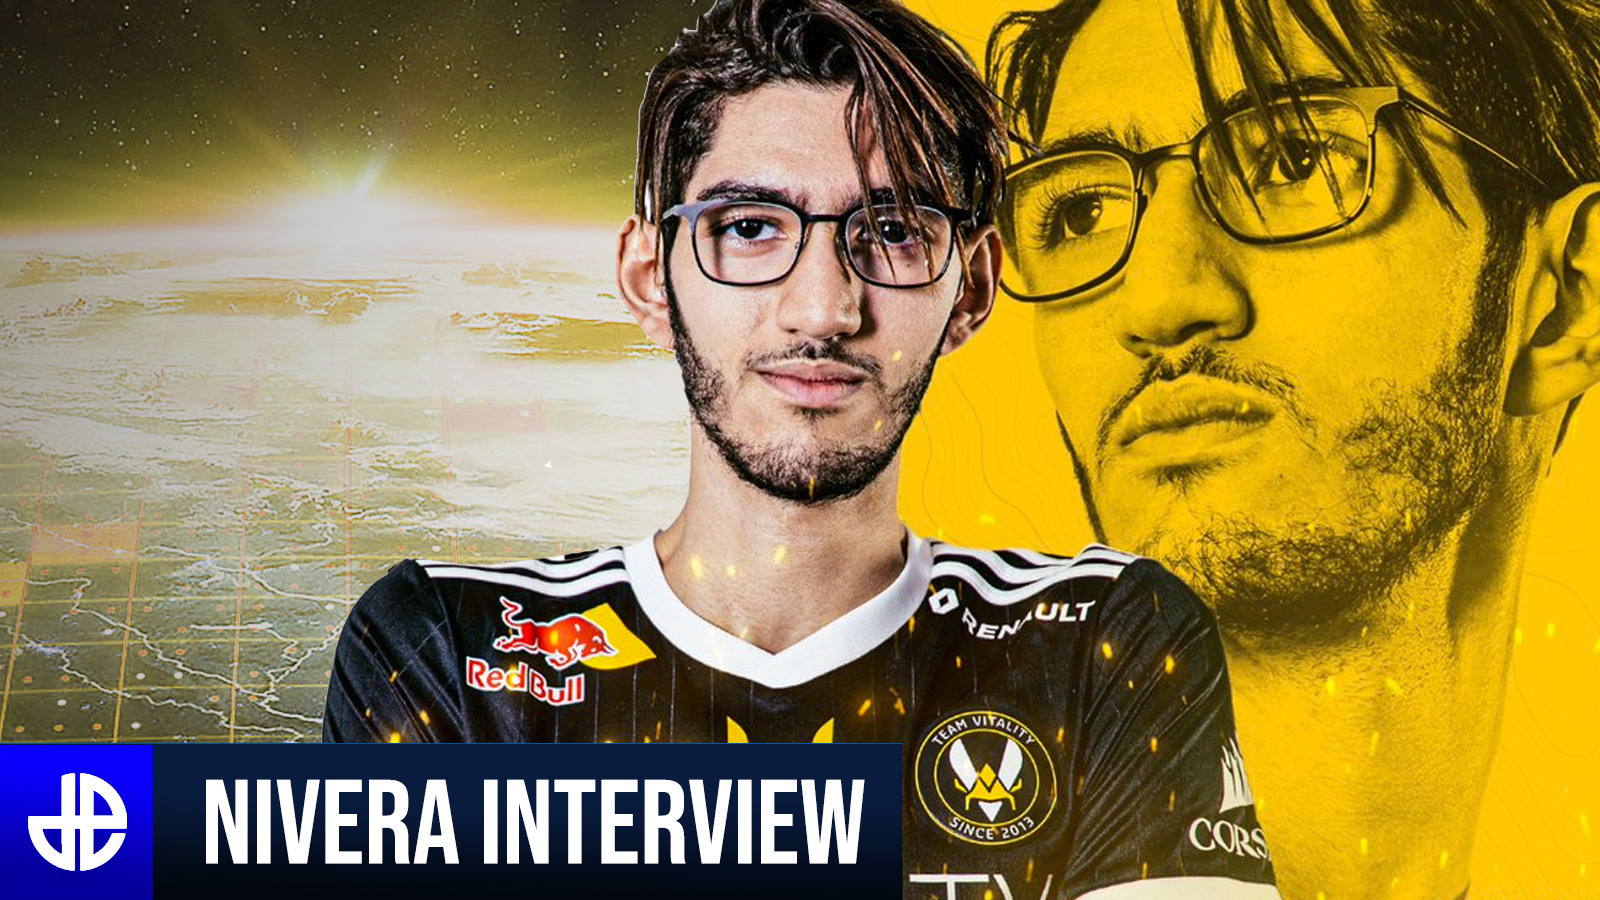 Nivera Interview